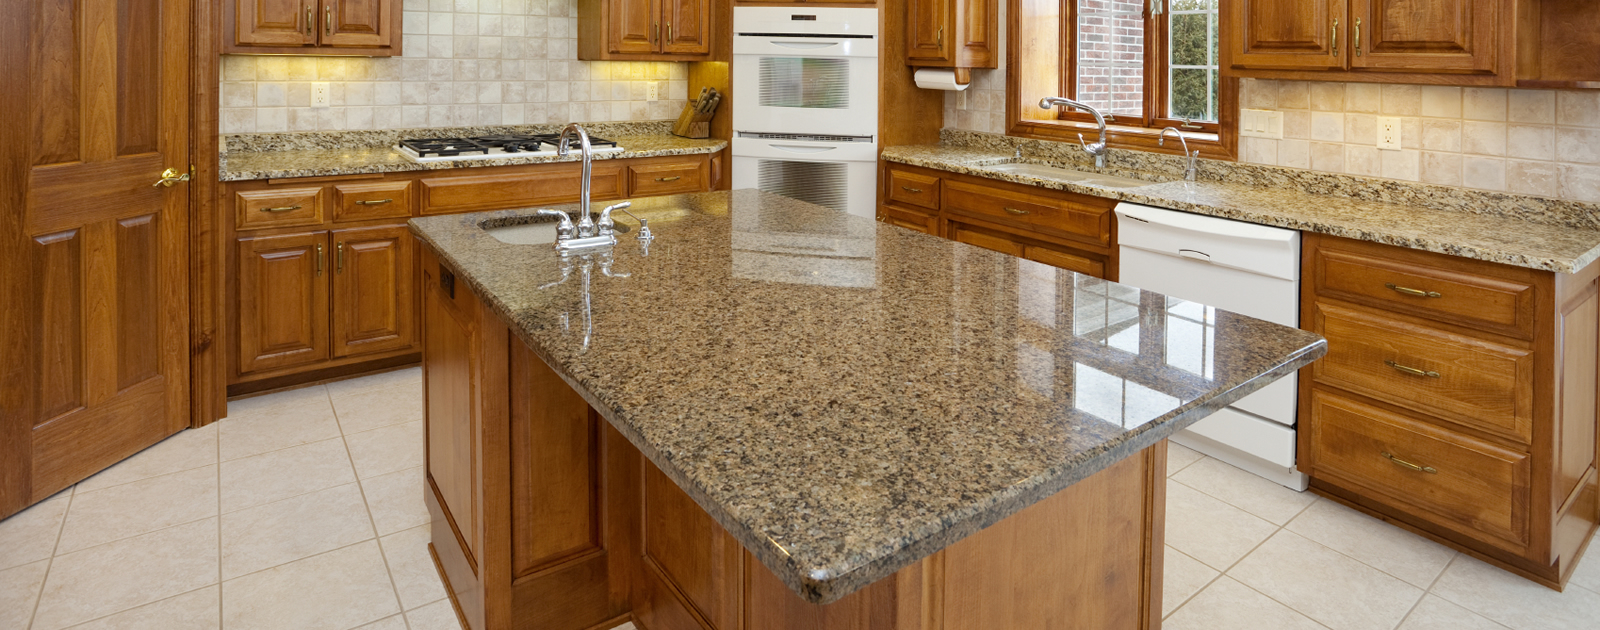 Granite Counter Tops : Comparing natural stone countertops kitchen remodeler